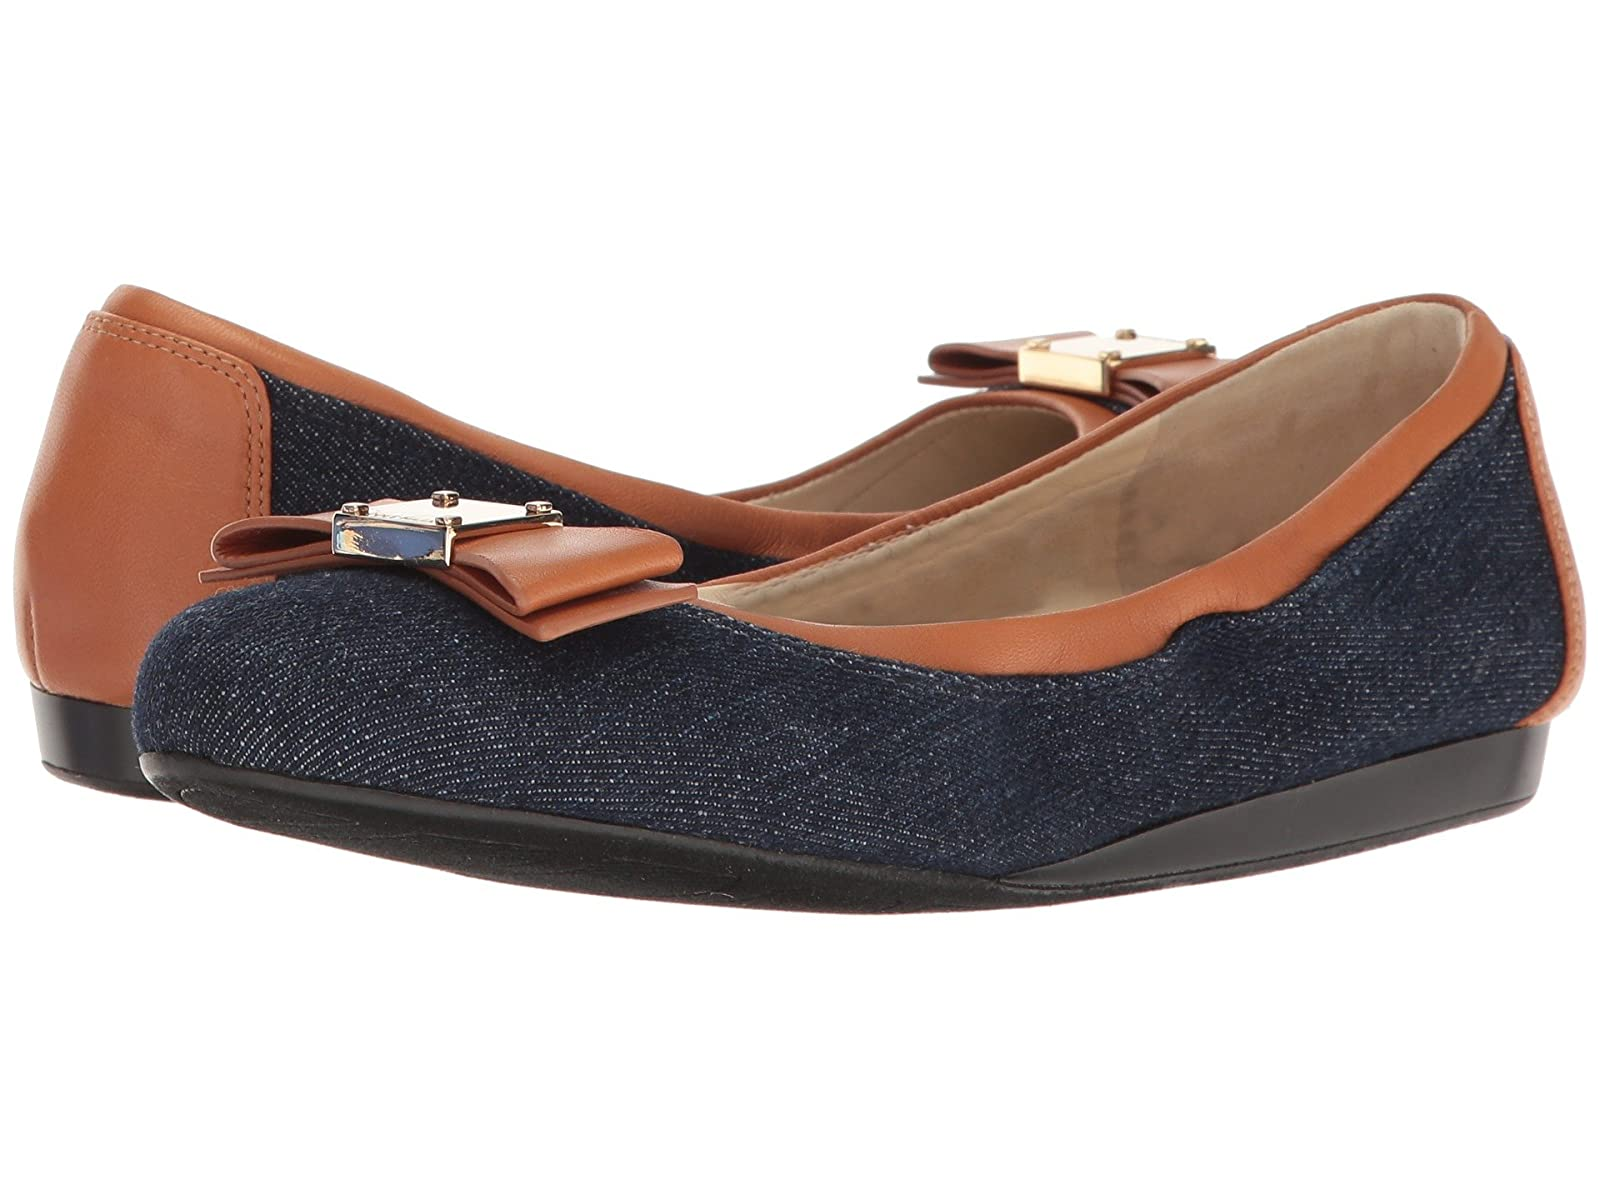 Cole Haan Tali Bow BalletCheap and distinctive eye-catching shoes